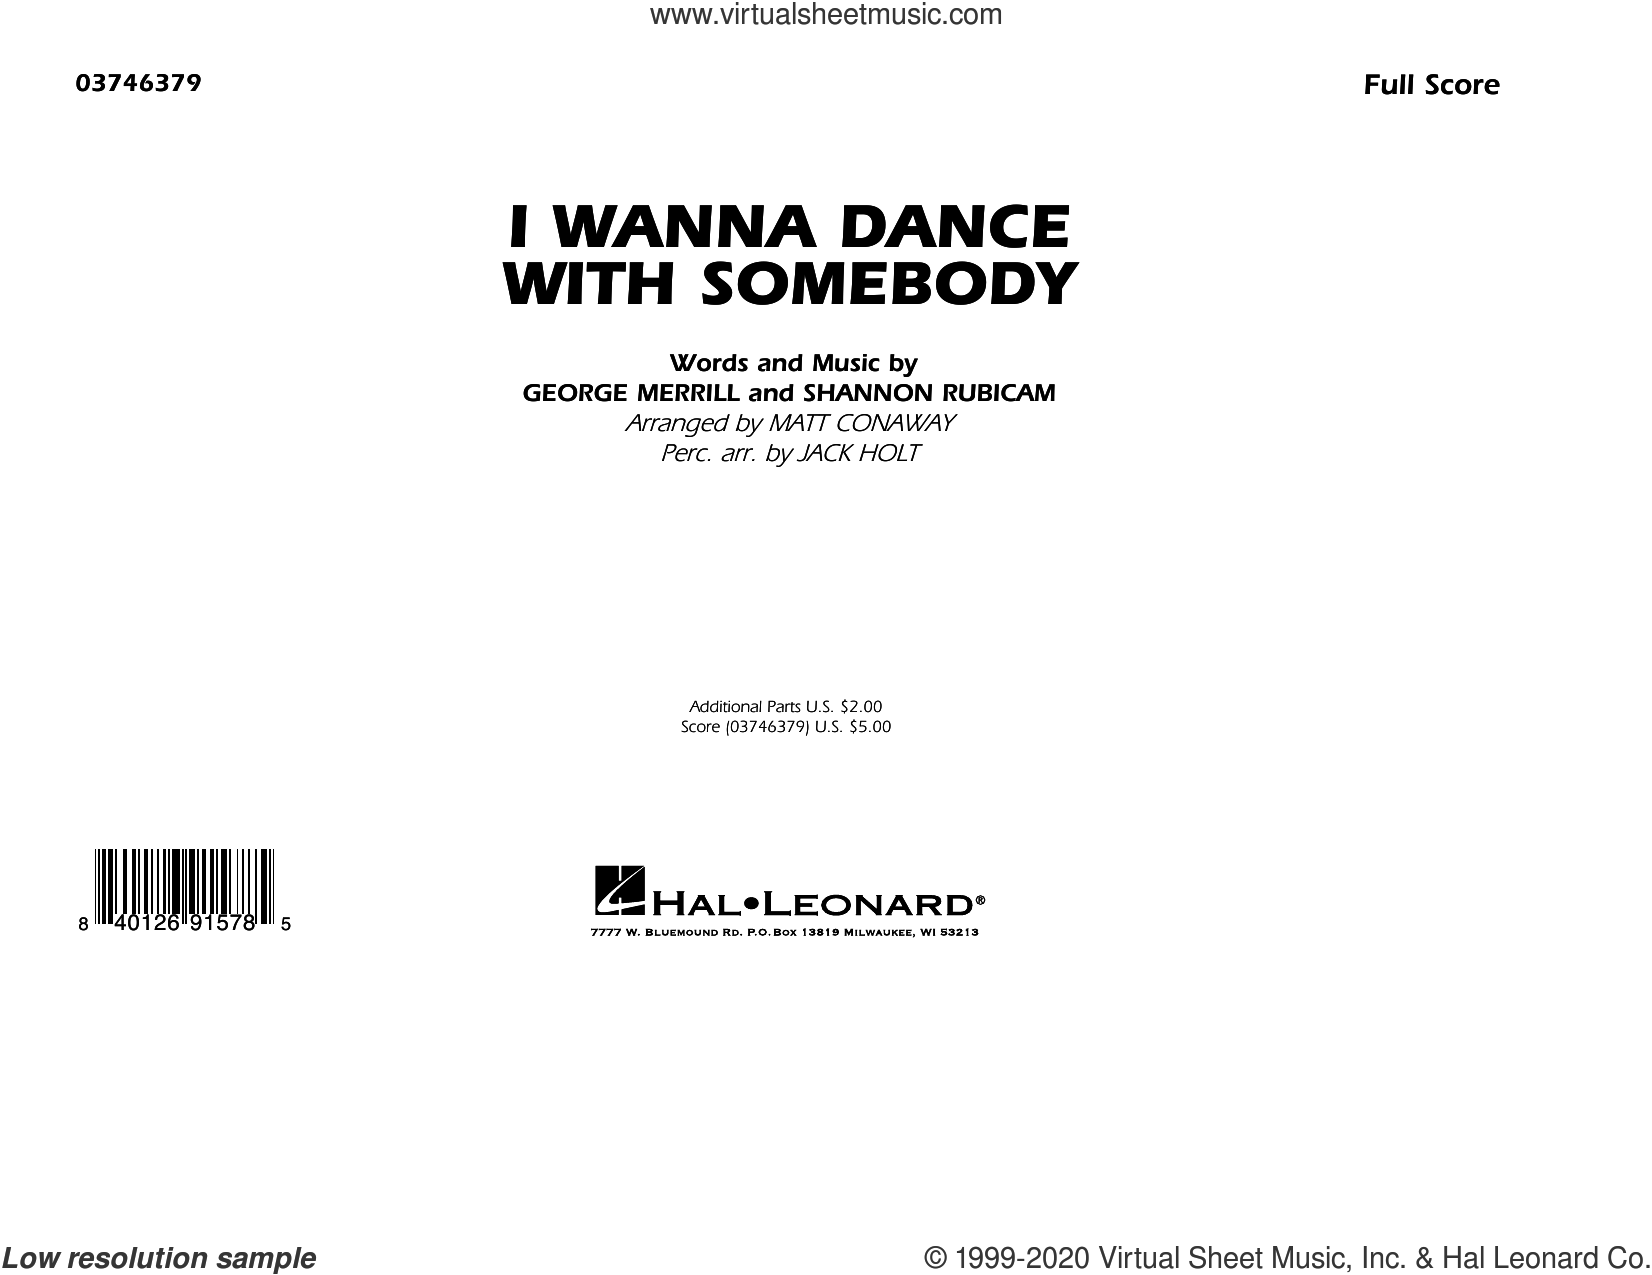 I Wanna Dance with Somebody (arr. Matt Conaway and Jack Holt) (COMPLETE) sheet music for marching band by Whitney Houston, George Merrill, Jack Holt, Matt Conaway and Shannon Rubicam, intermediate skill level